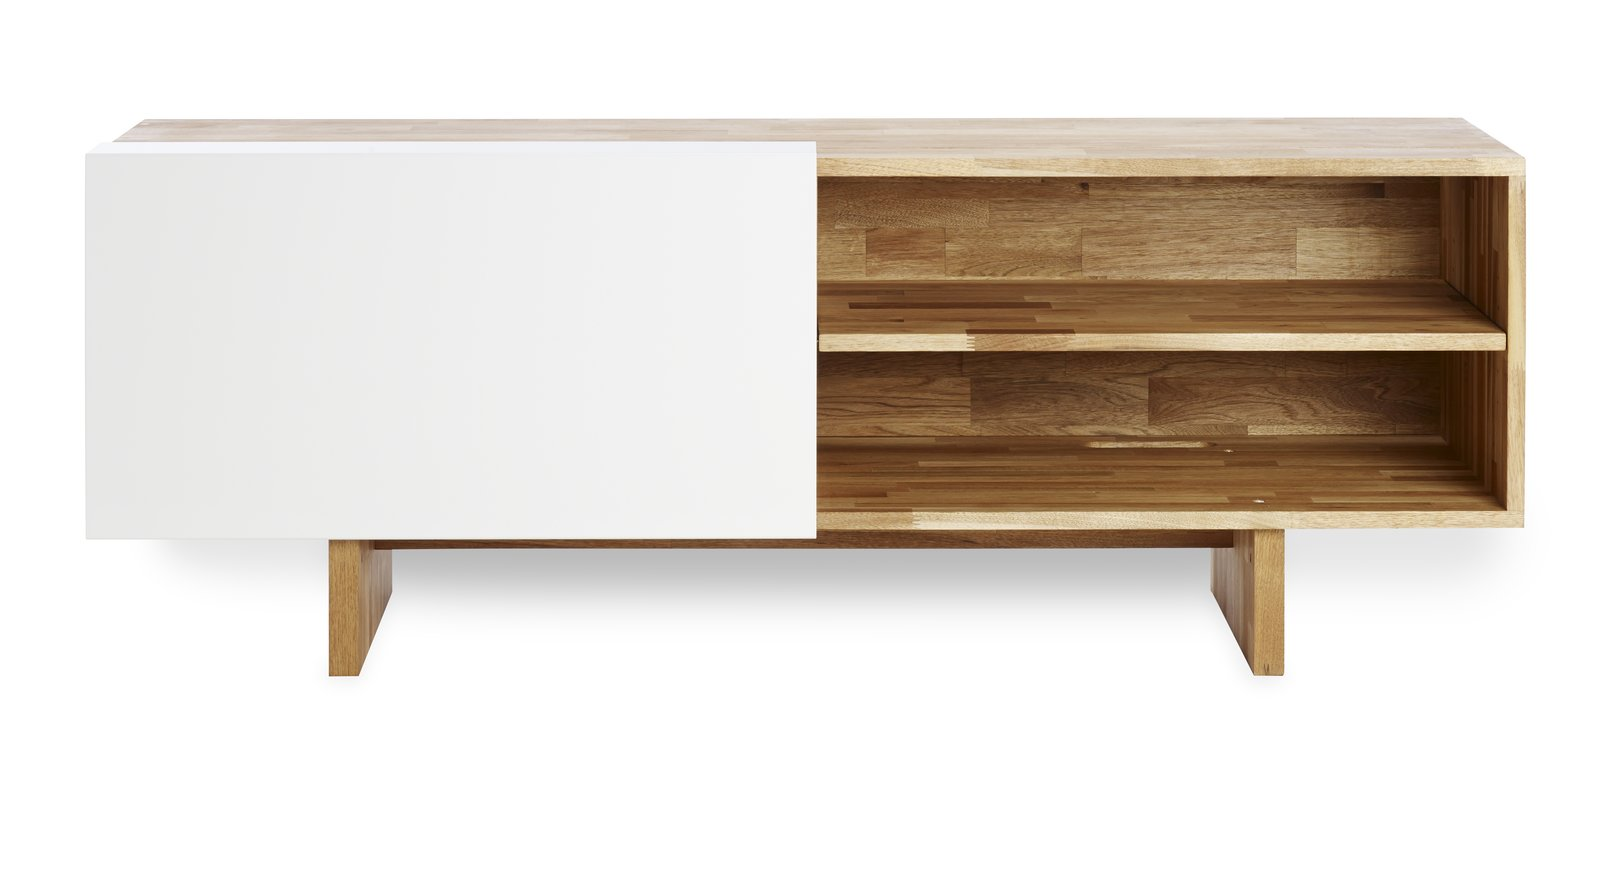 The Entertainment Shelf includes a panel that slides to reveal easy-to-reach shelves on either side.  Modern Furniture